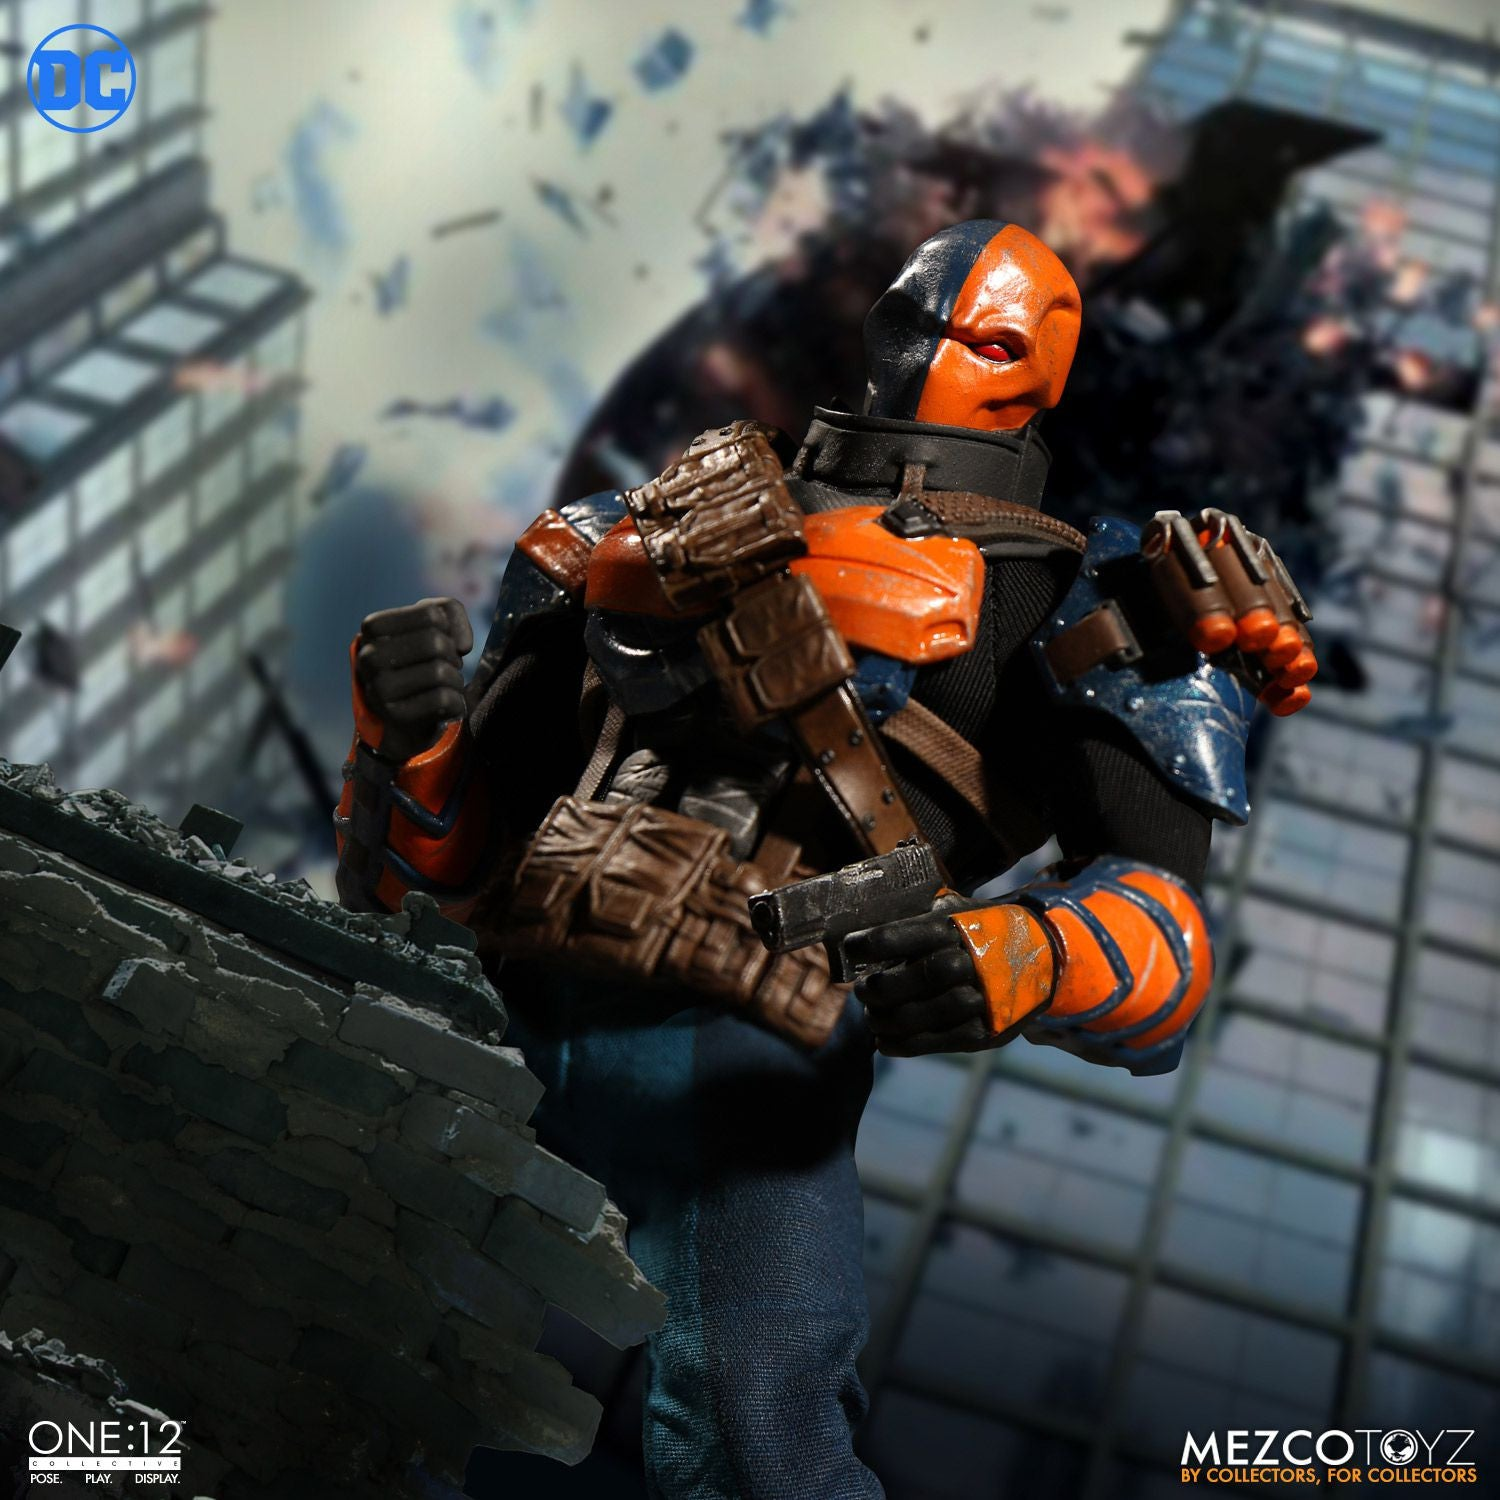 Mezco - One:12 Collective - Deathstroke - Marvelous Toys - 5